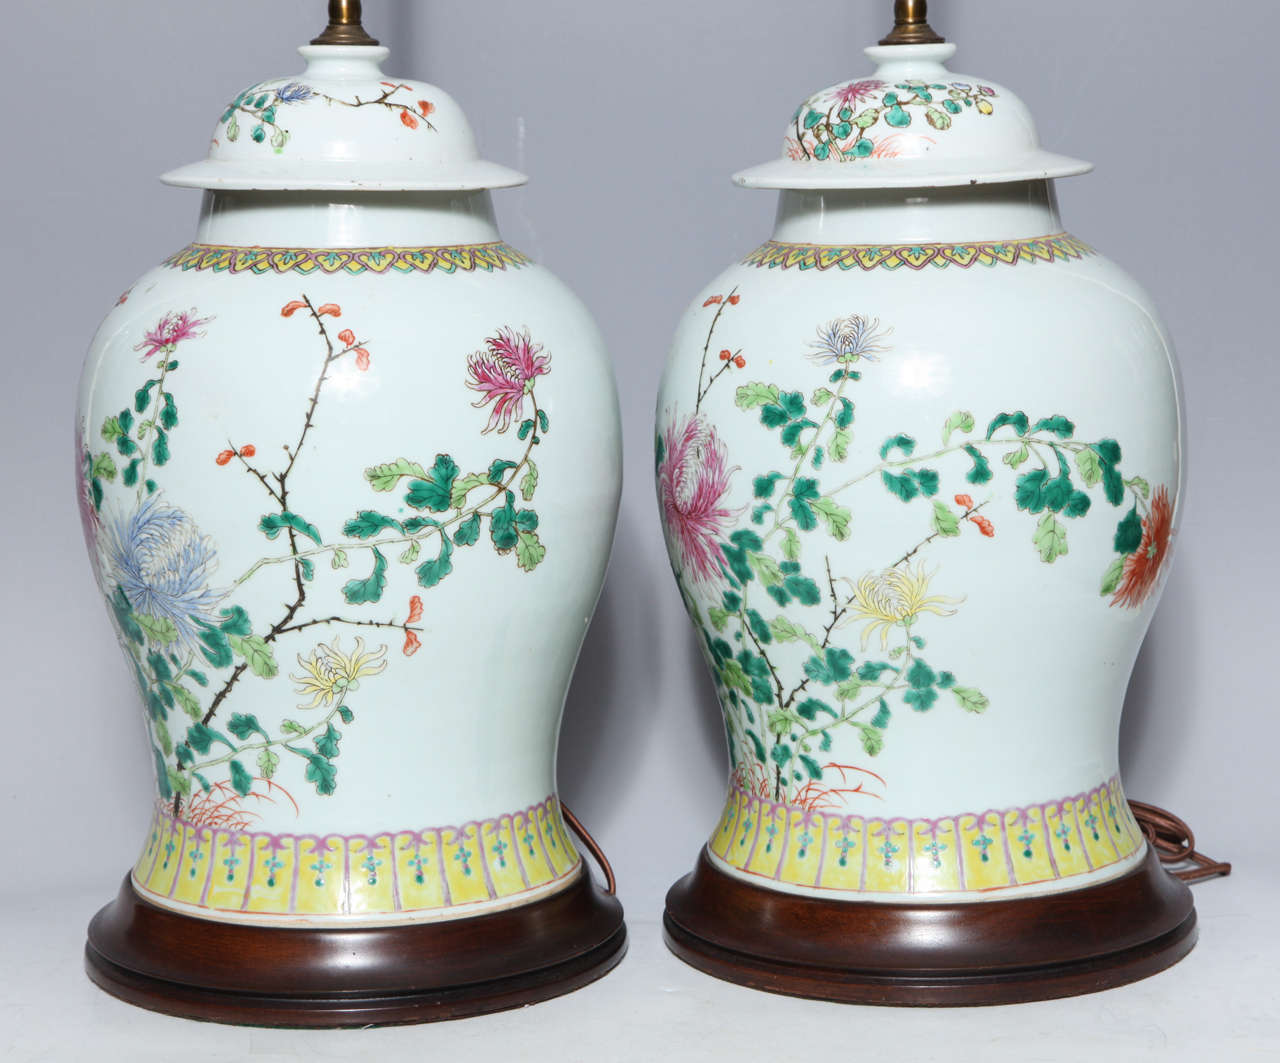 Pair of 19th Century Chinese Porcelain Ginger Jars Converted into Table Lamps For Sale 3